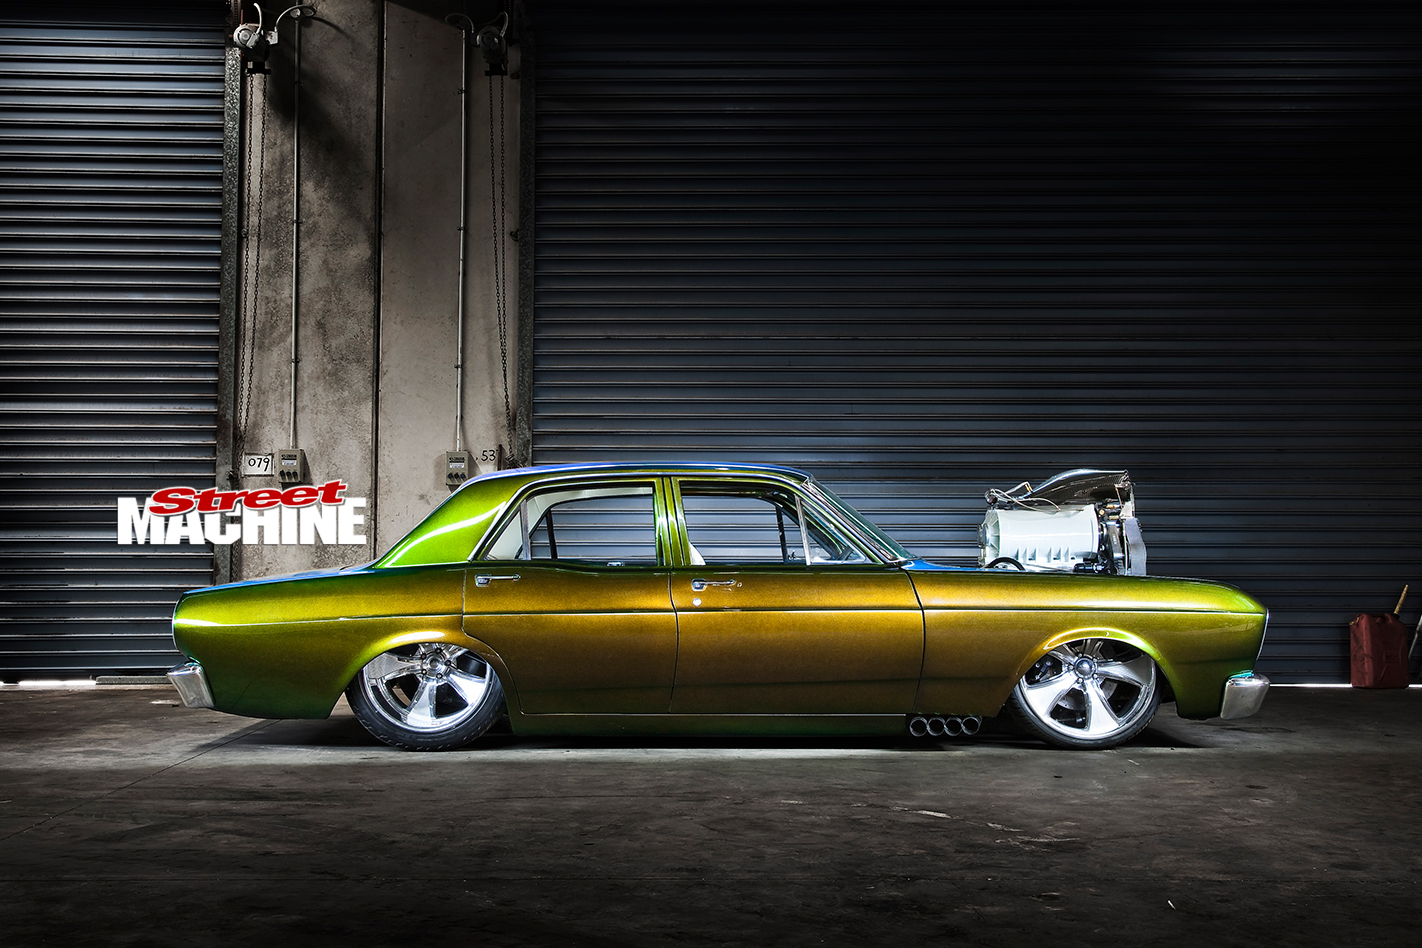 Ford -Falcon -XR-atriskside -view